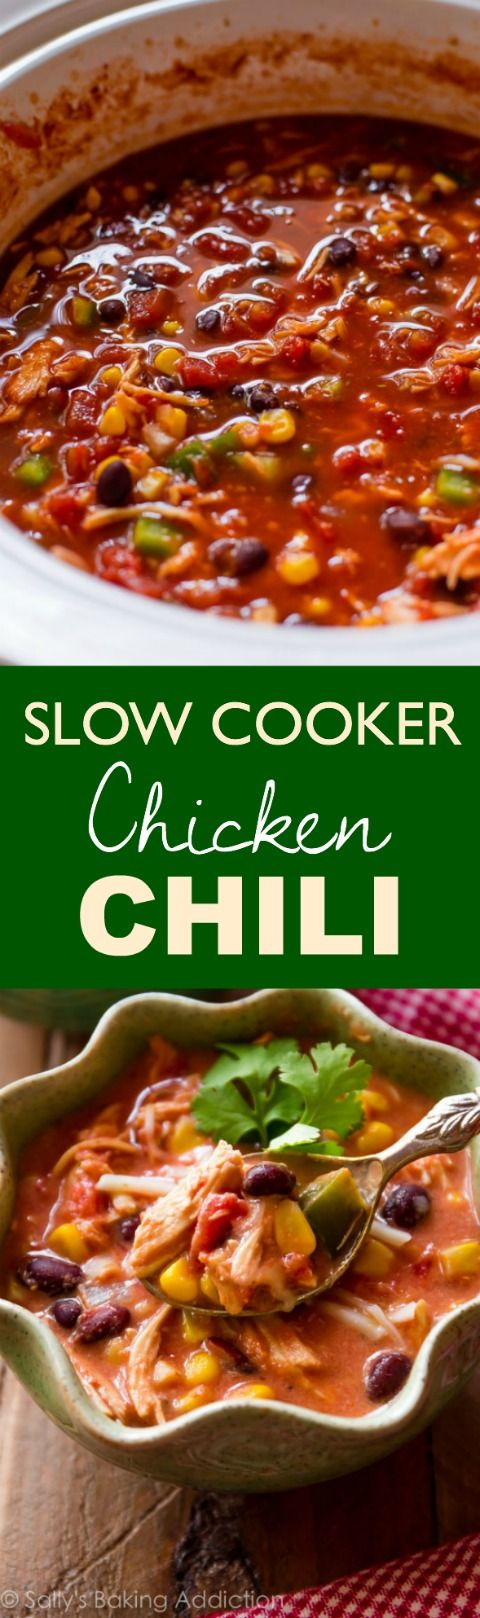 EASY, cozy, comforting, healthy slow cooker chicken chili, set it and forget it! Ready in 7-8 hours. Recipe at sallysbakingaddiction.com: